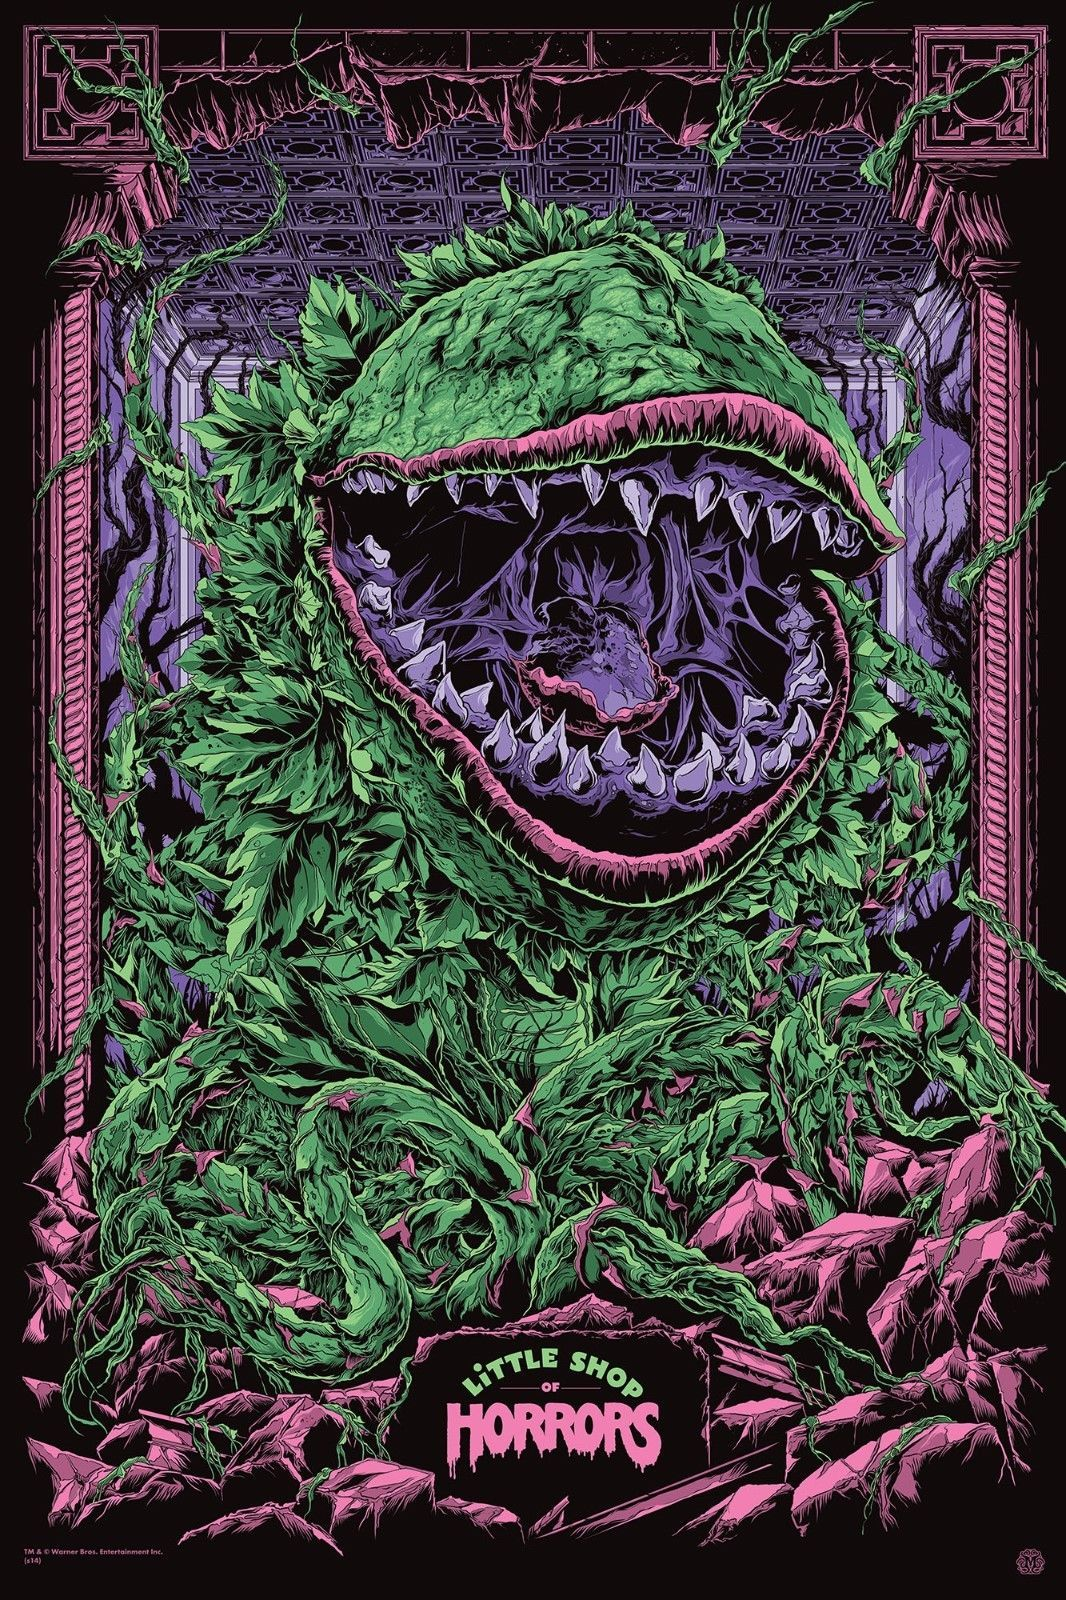 Little Shop Of Horrors Custom Artwork Shirt W Options Full Front Of Shirt Tienda De Los Horrores Carteles De Películas Famosas Horror Movie Posters